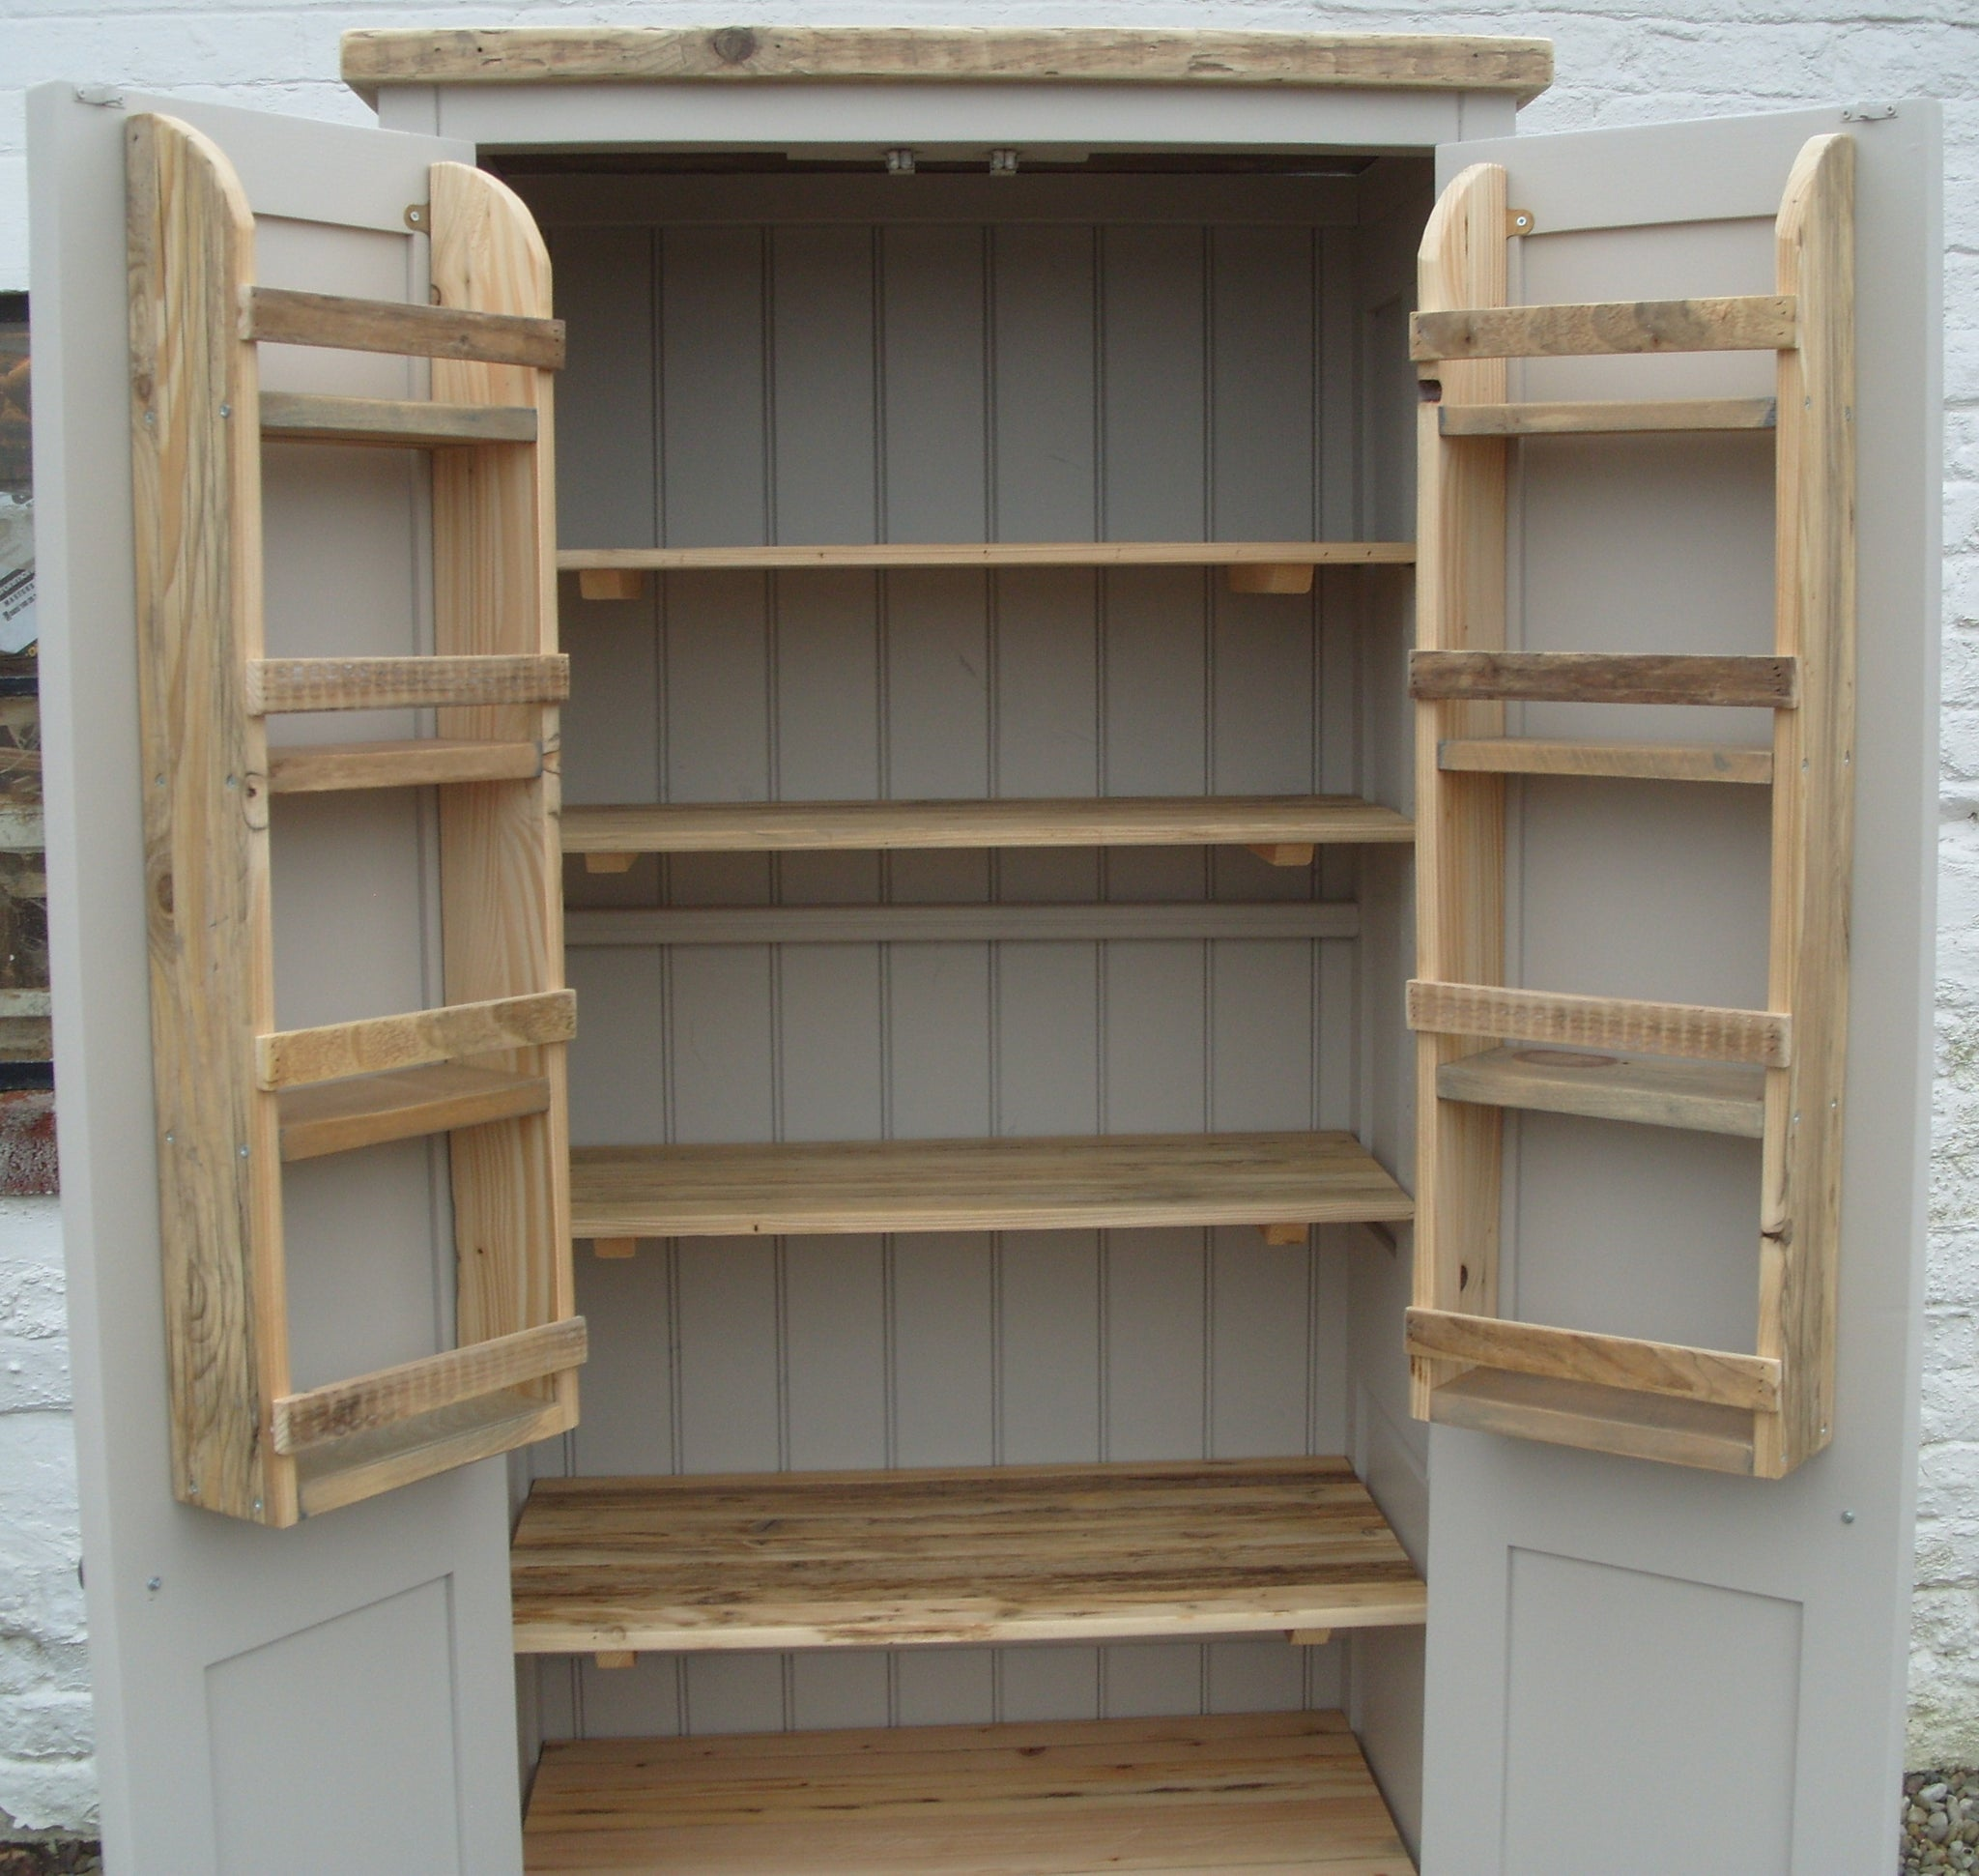 Bespoke Rustic Reclaimed Timber Kitchen Larder Pantry Cupboard Spi Cheshire Pine And Oak